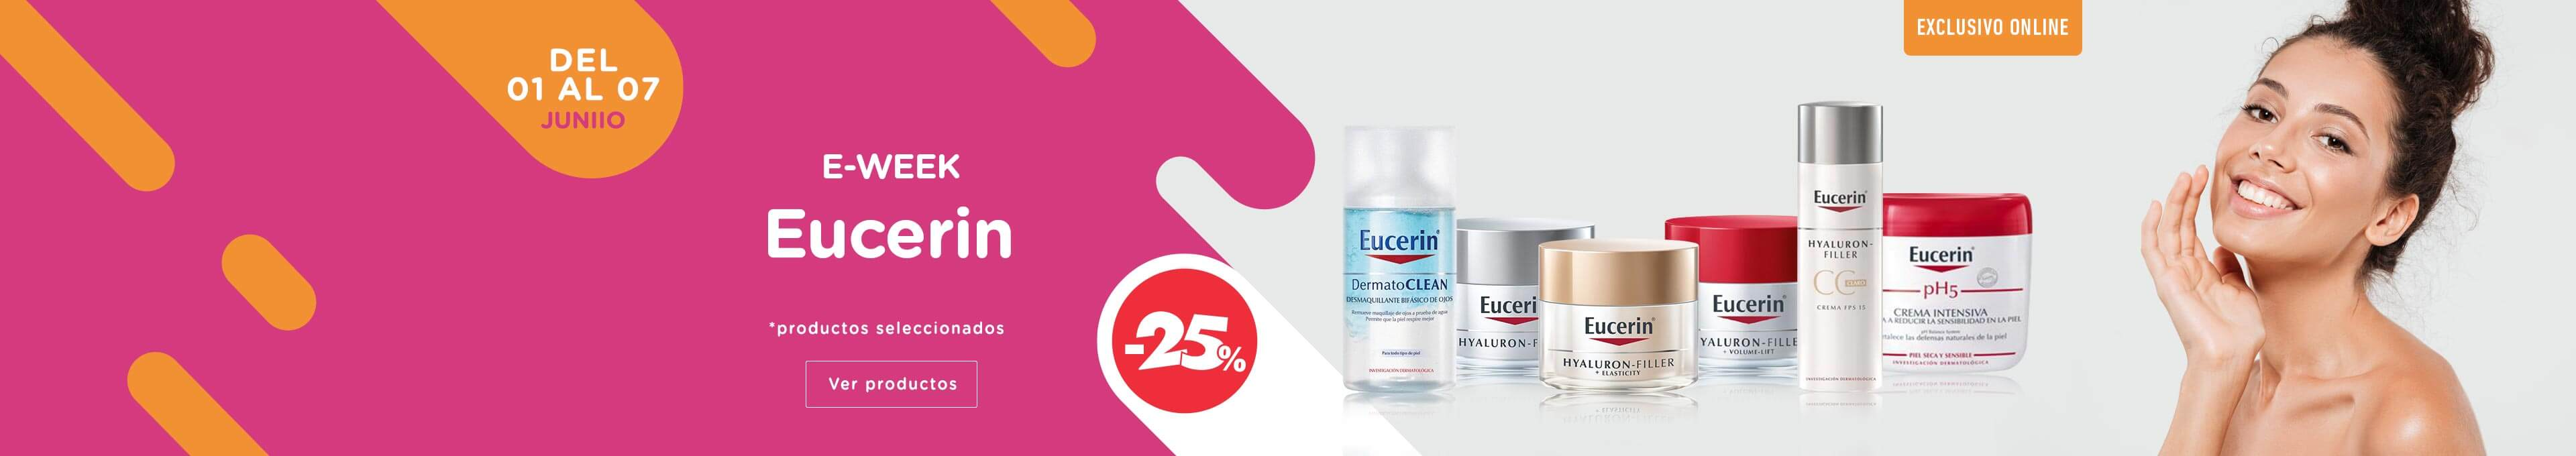 Eucerin NewHome